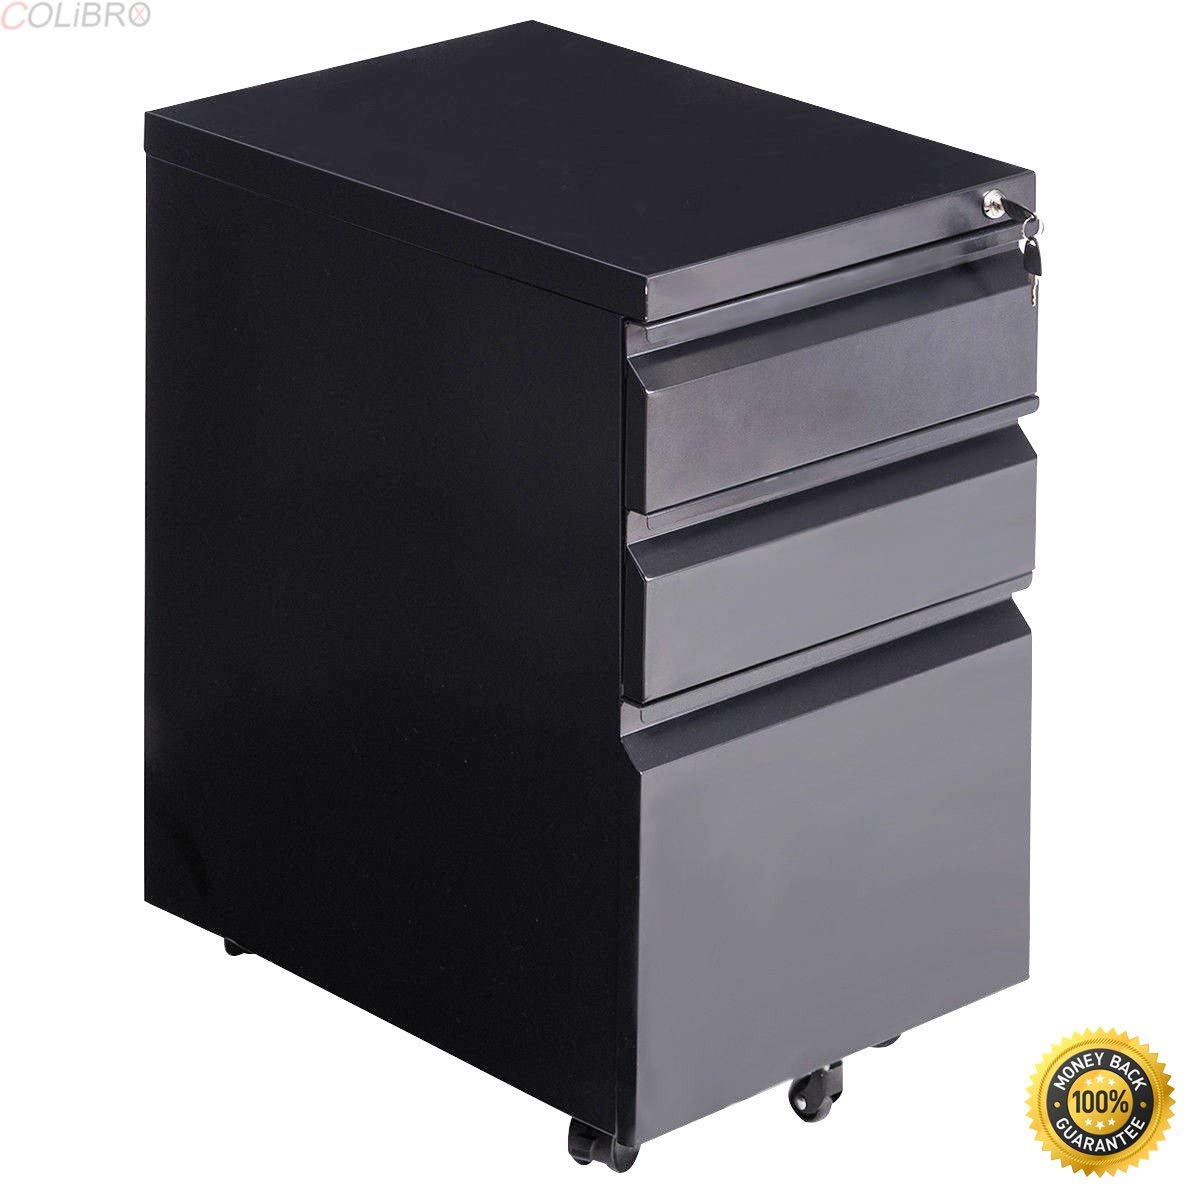 Get Quotations Colibrox File Cabinet Rolling Mobile A4 Drawers Pedestal Storage Steel Home Office Black